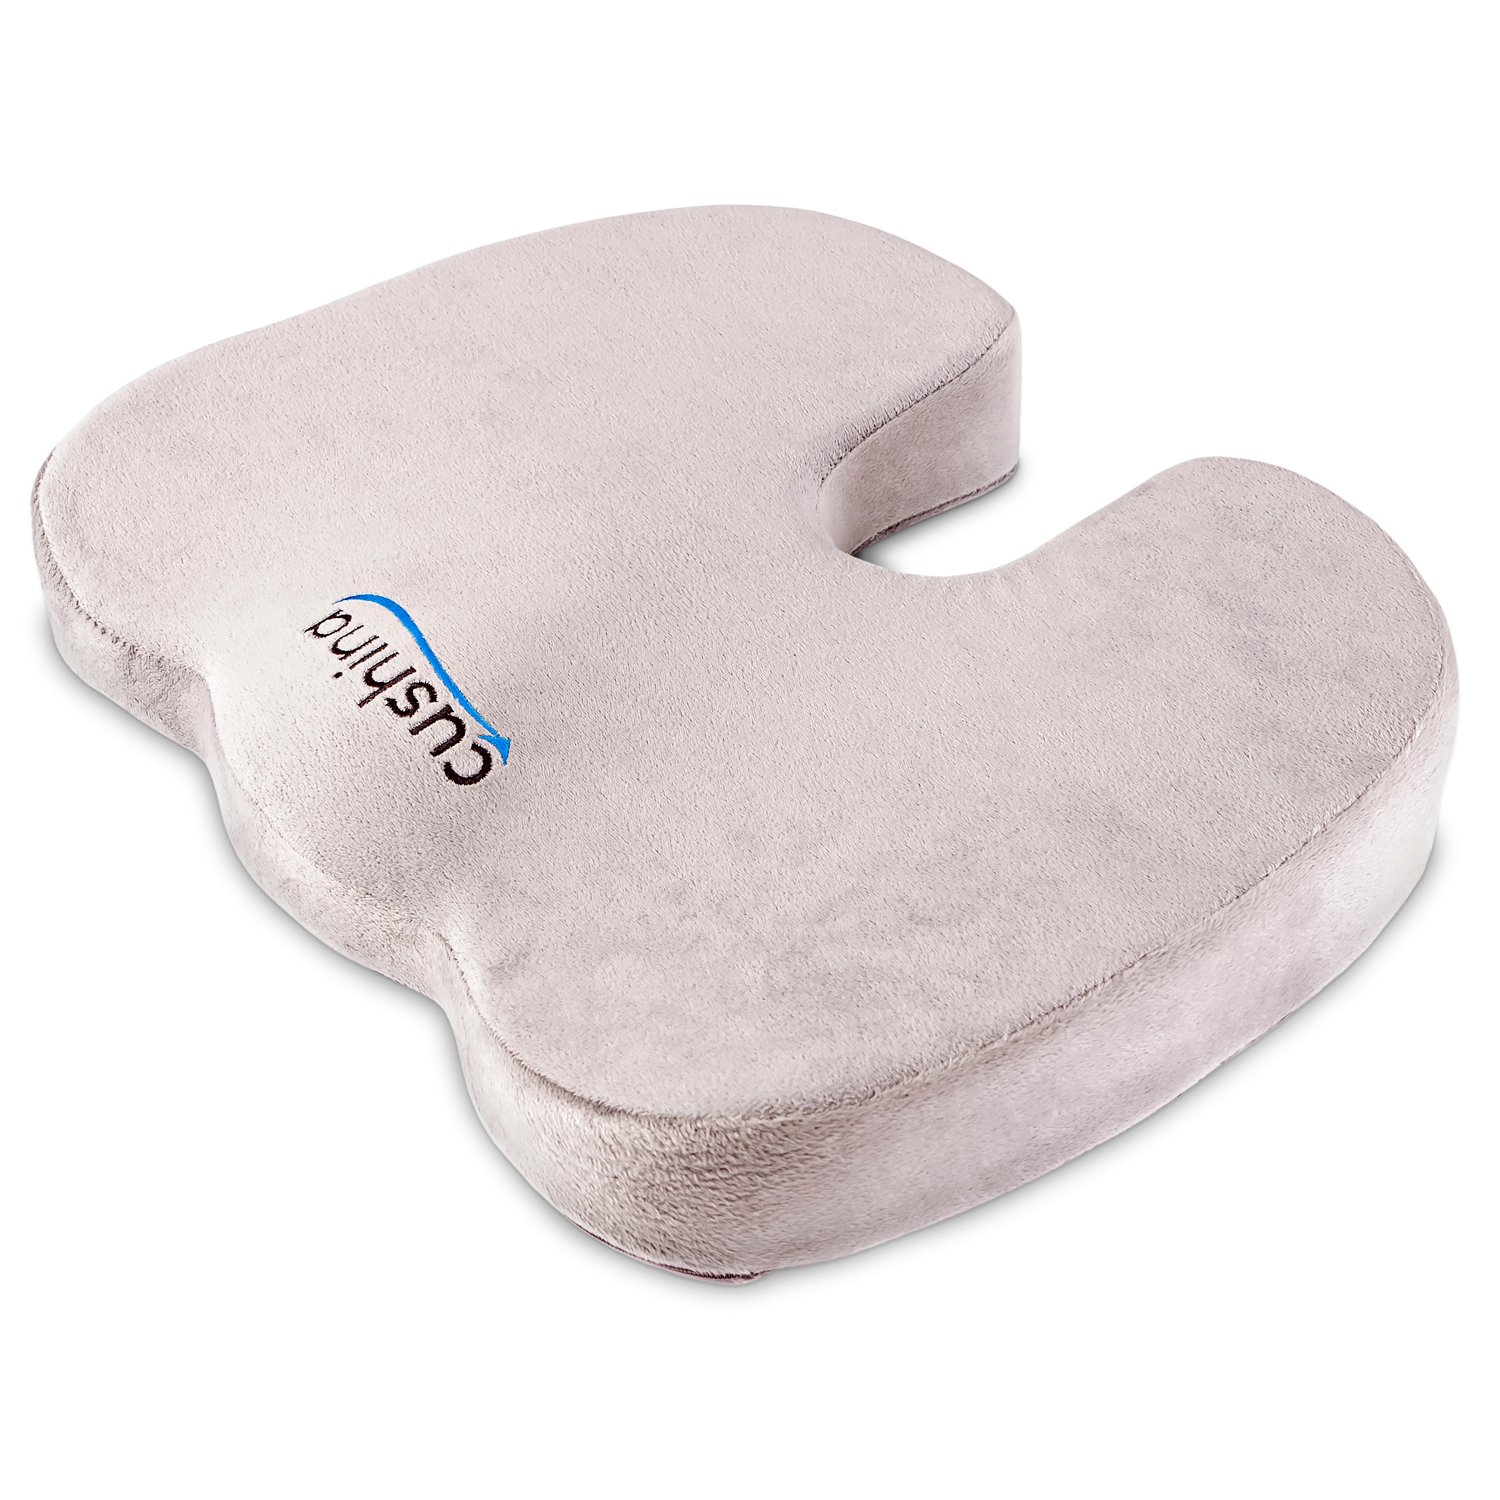 amazon com cushina 100 premium memory foam seat cushion